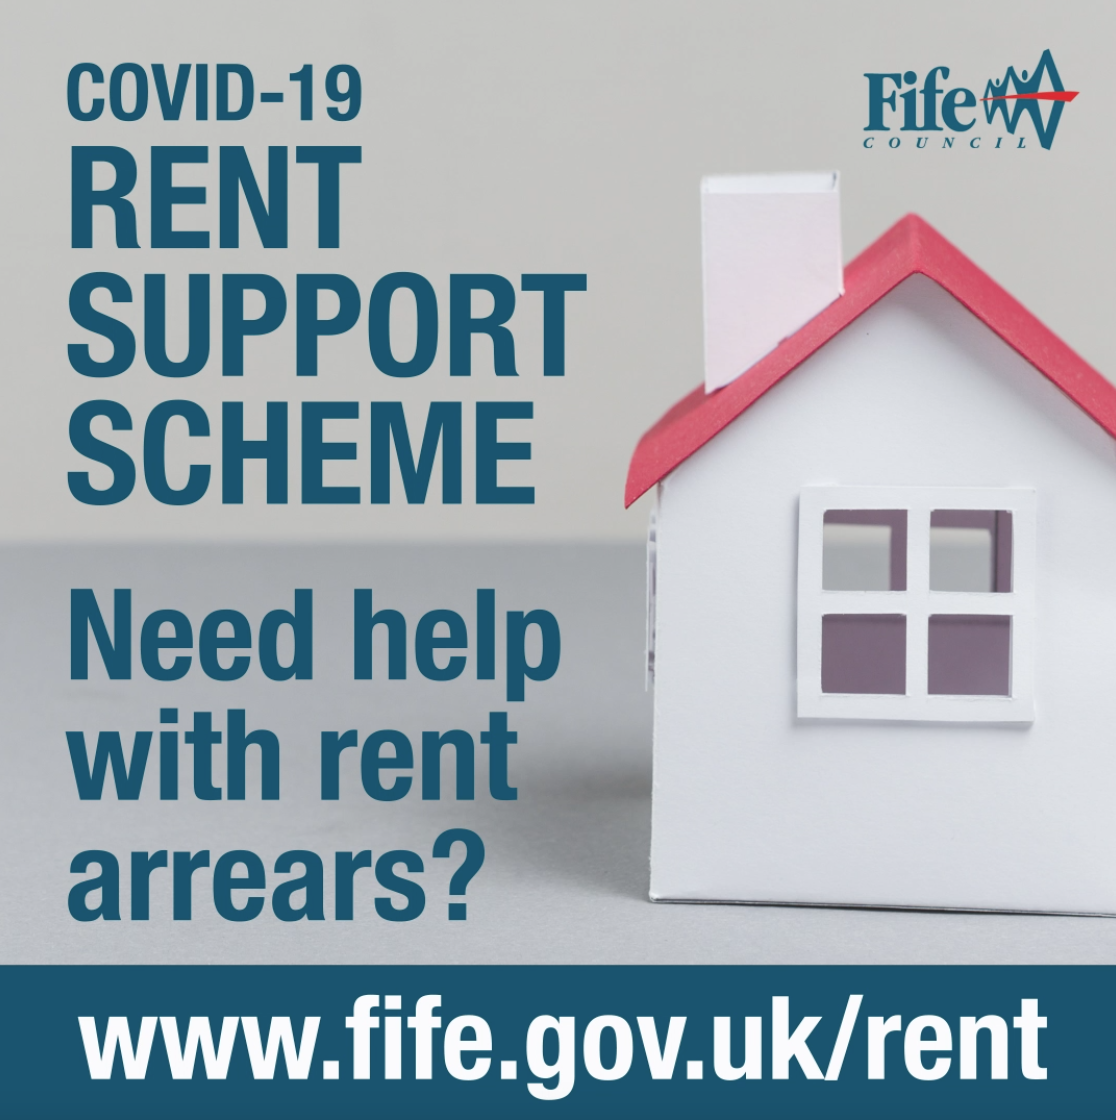 We can help with your rent - house